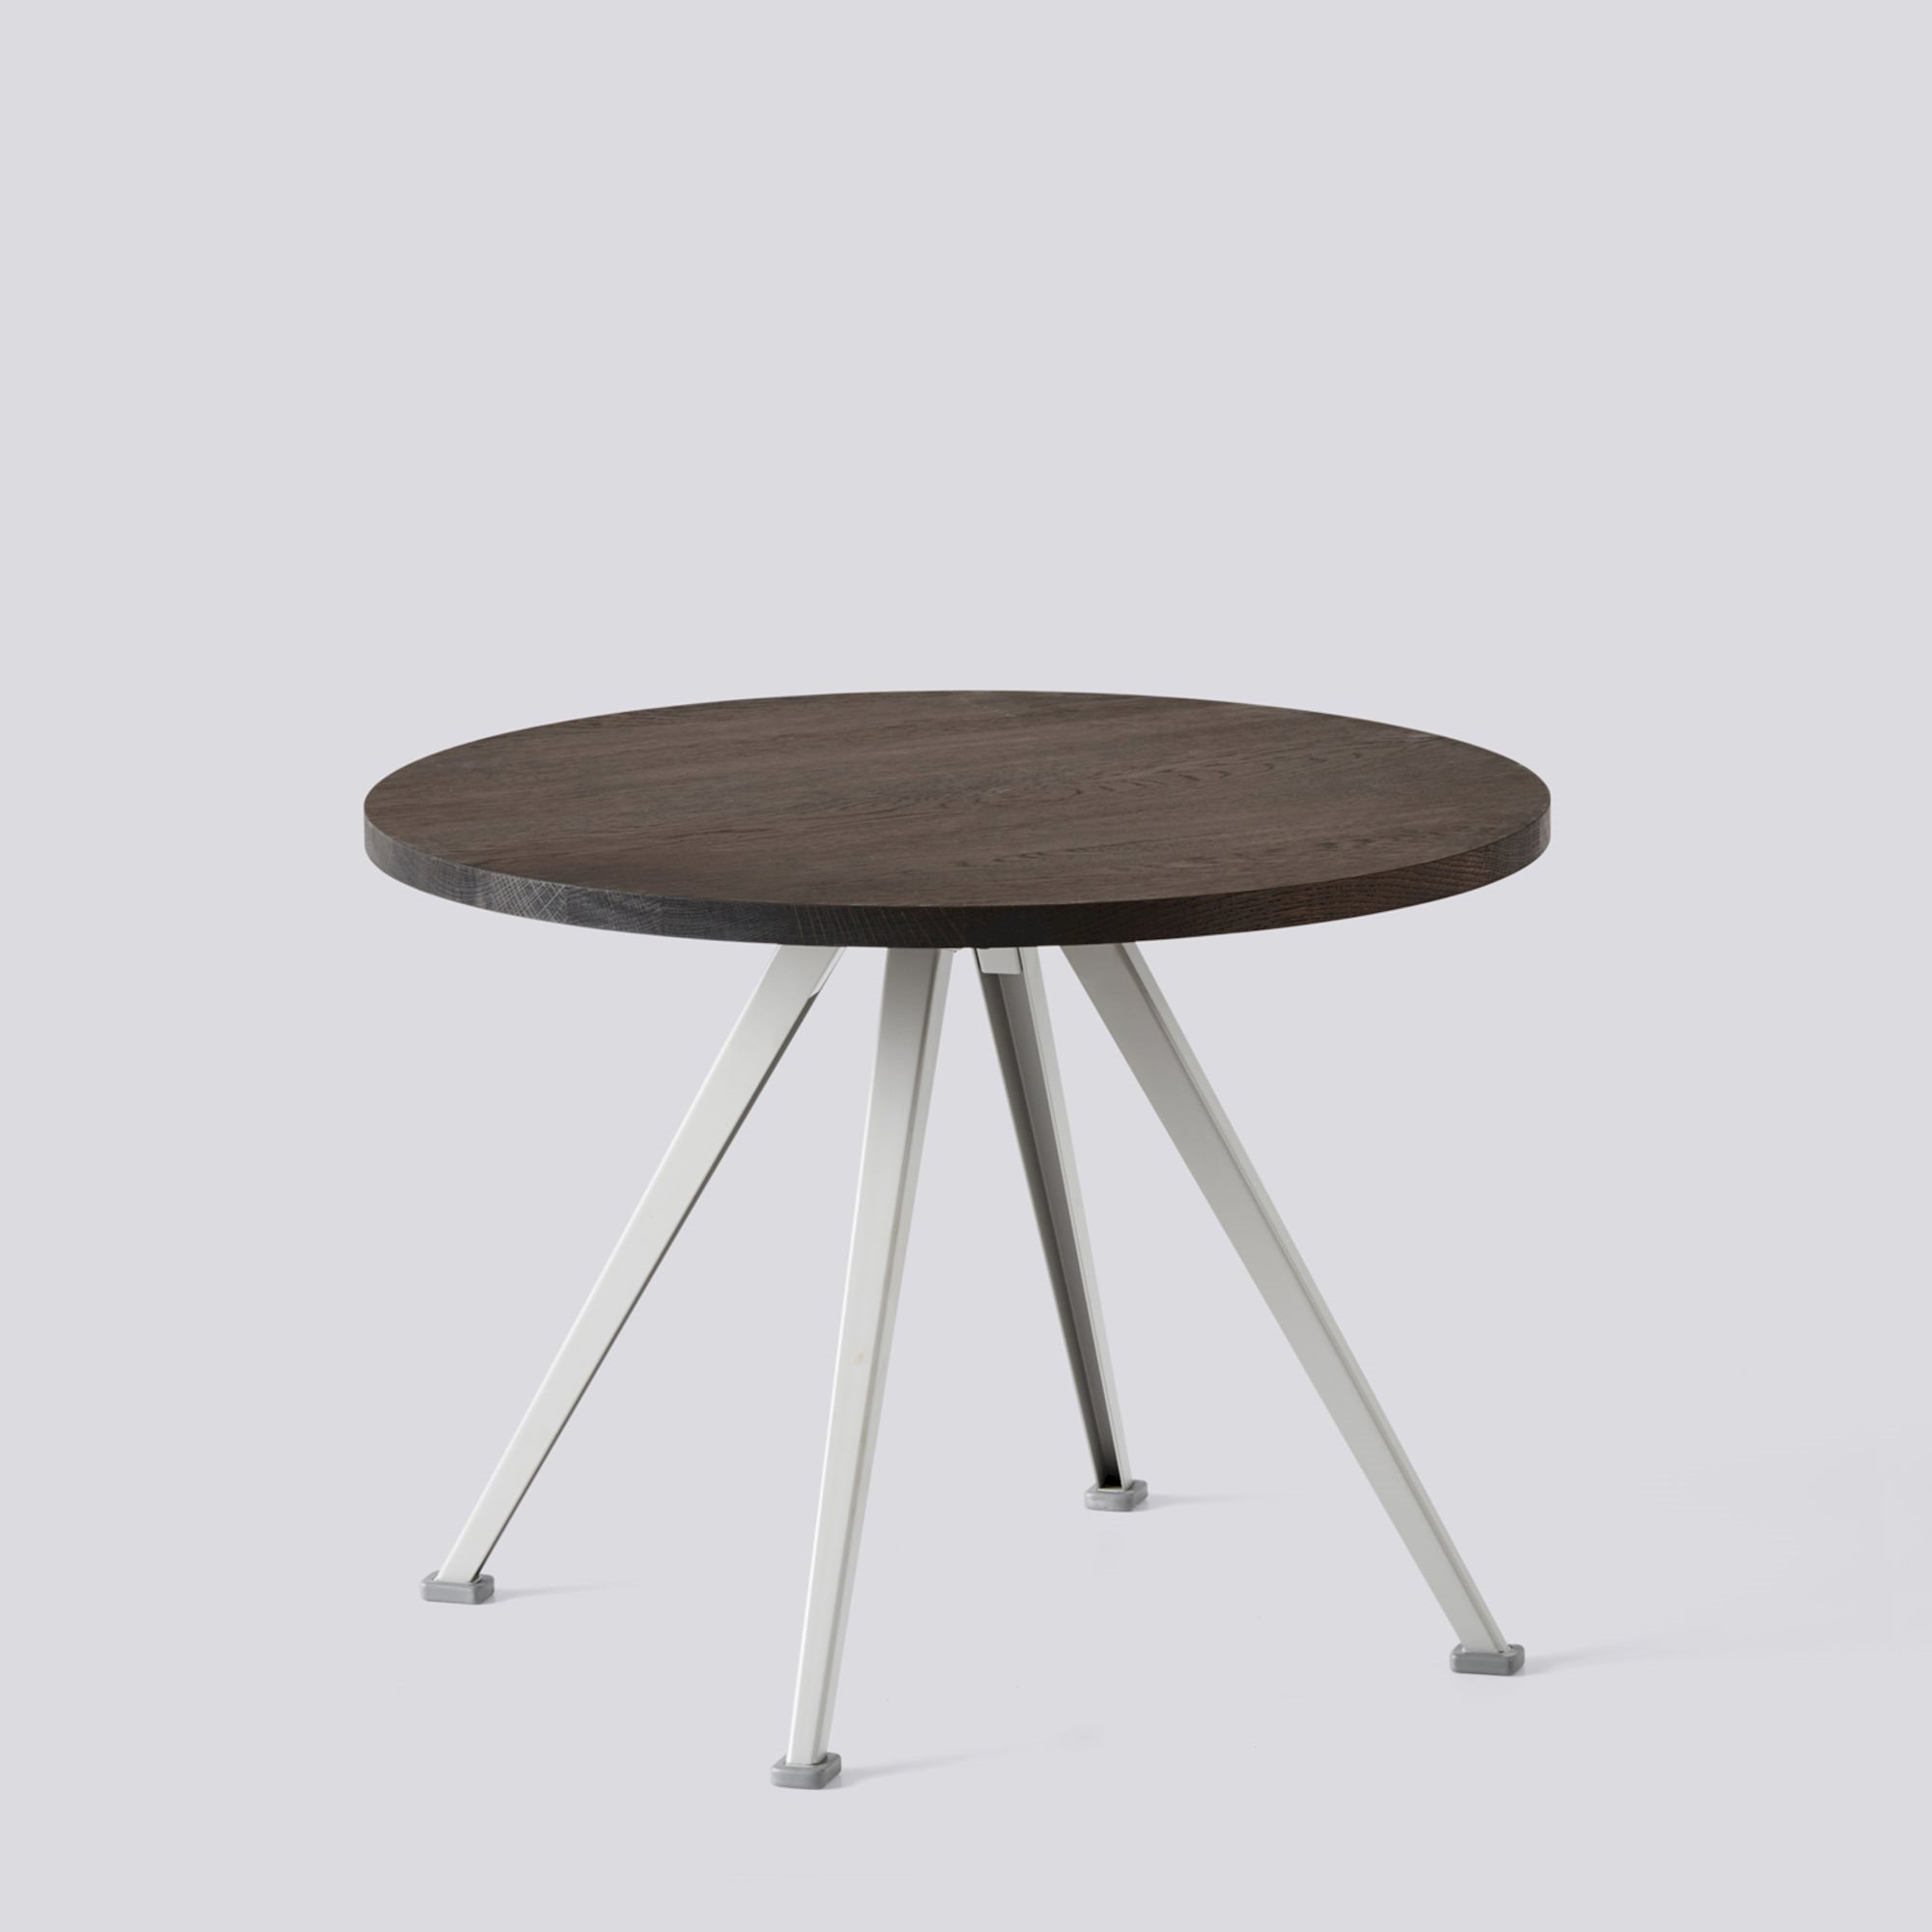 Smoked Oak Coffee Tables Within Fashionable Pyramid Coffee Table 51 Beige Frame Ø60 X H44 Smoked Oak – Hay (View 17 of 20)